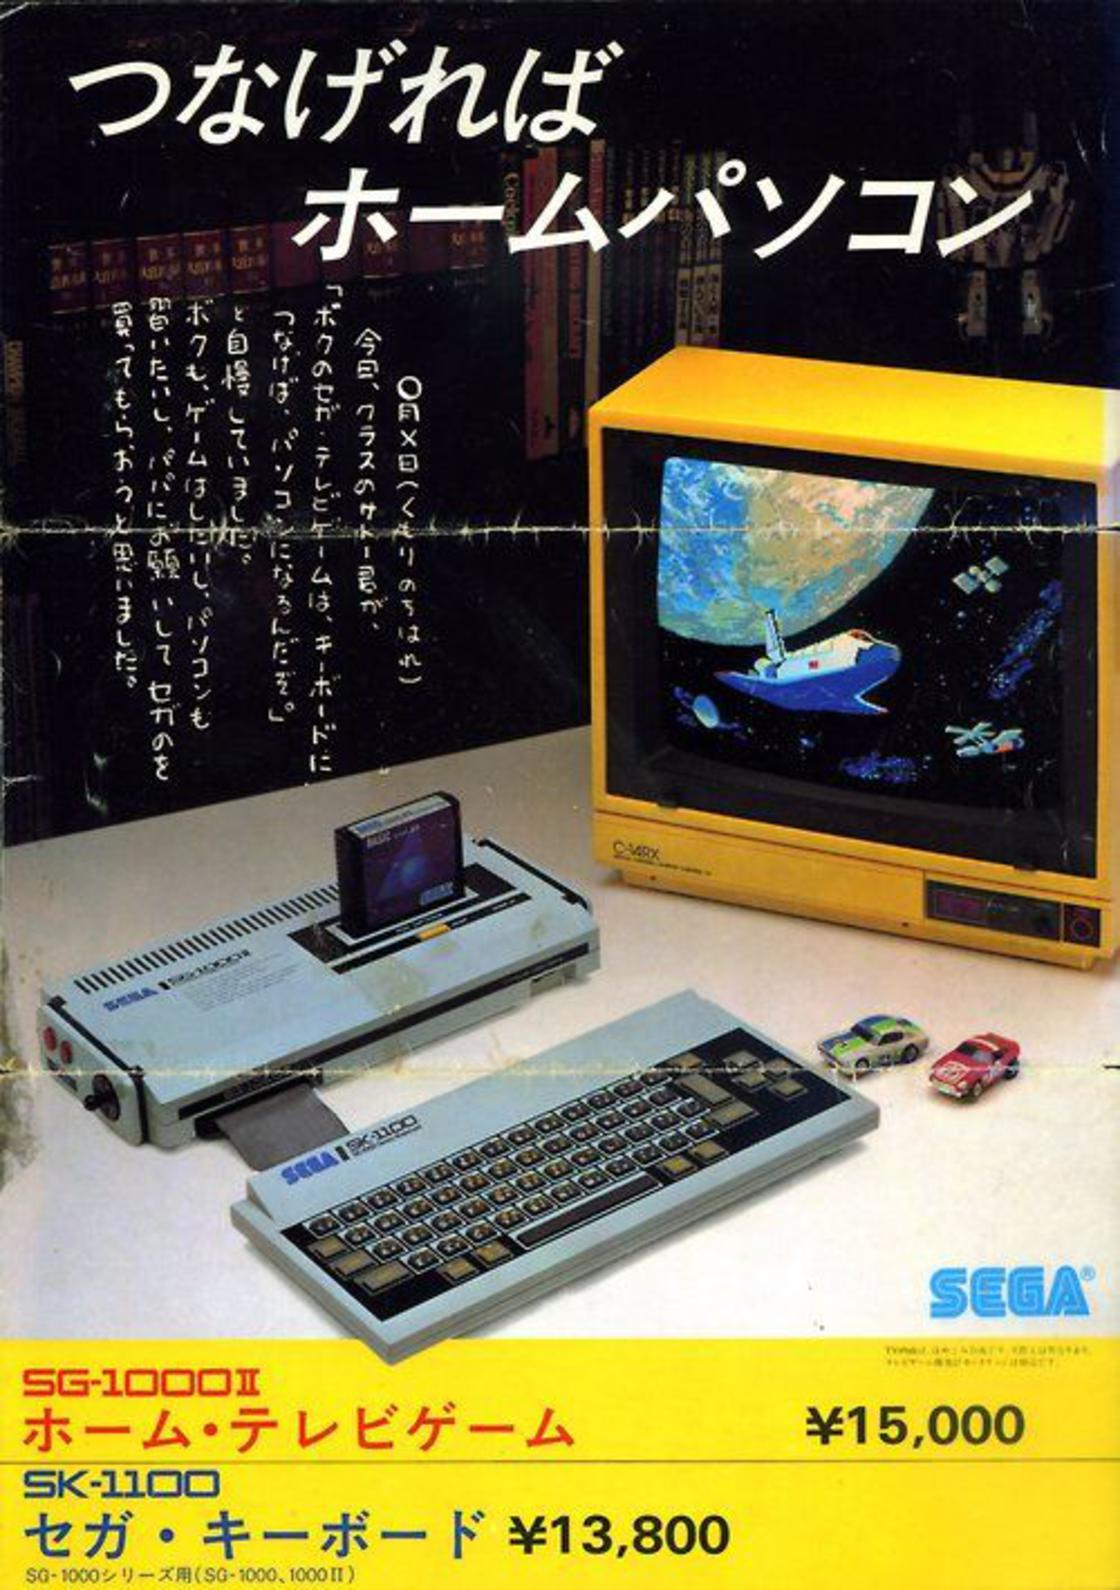 publicites-japonaises-jeux-video-1980-9.jpg